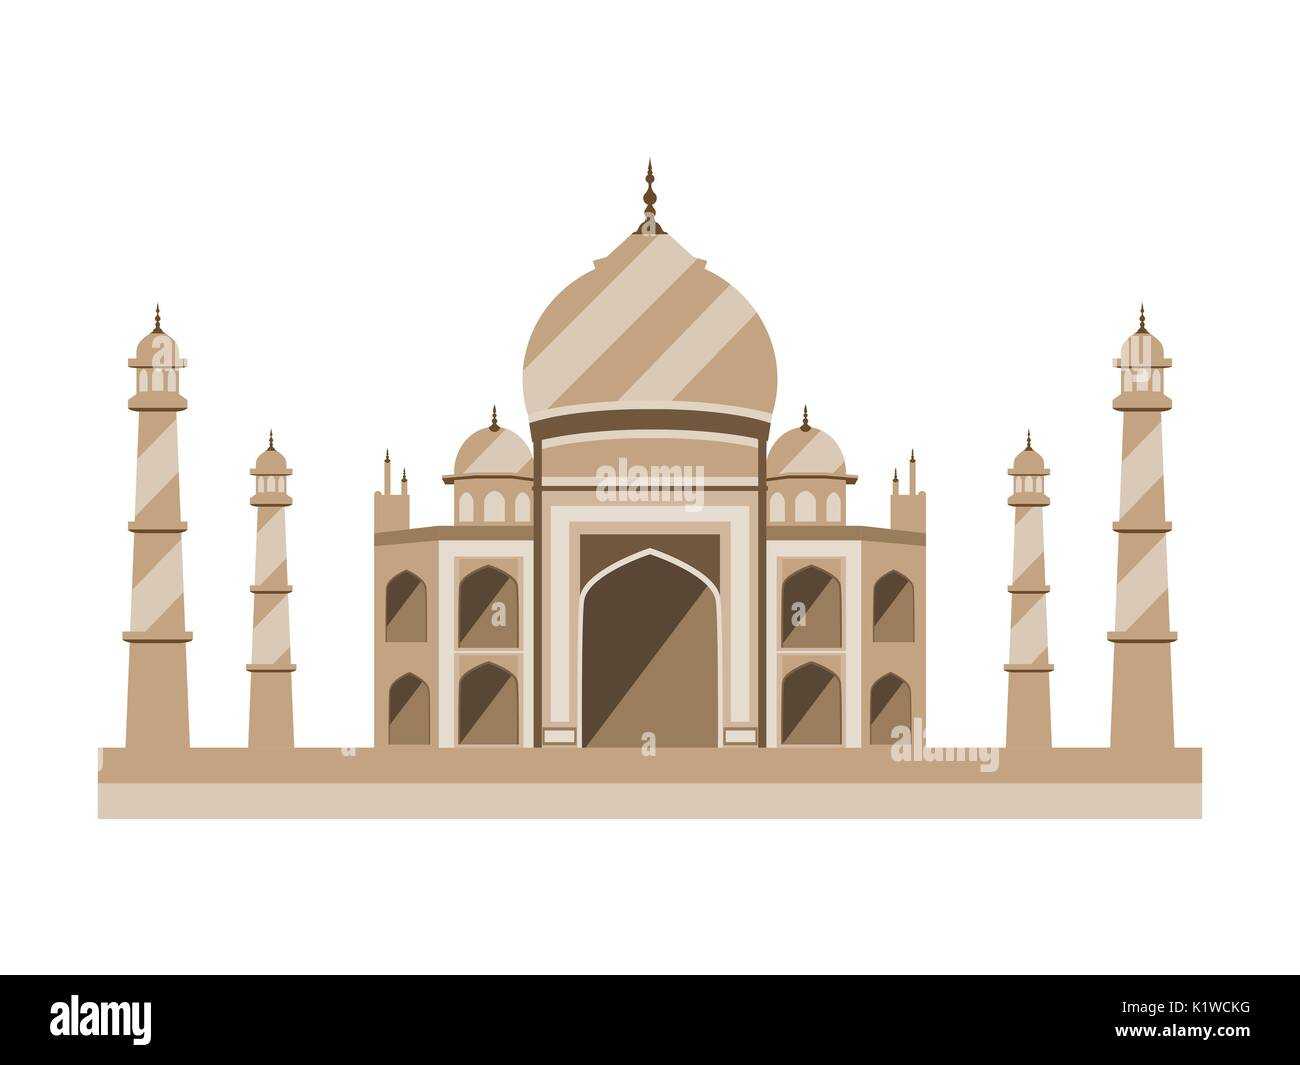 Taj Mahal flat style. Ancient Palace in India isolated on white background. Vector illustration. - Stock Image